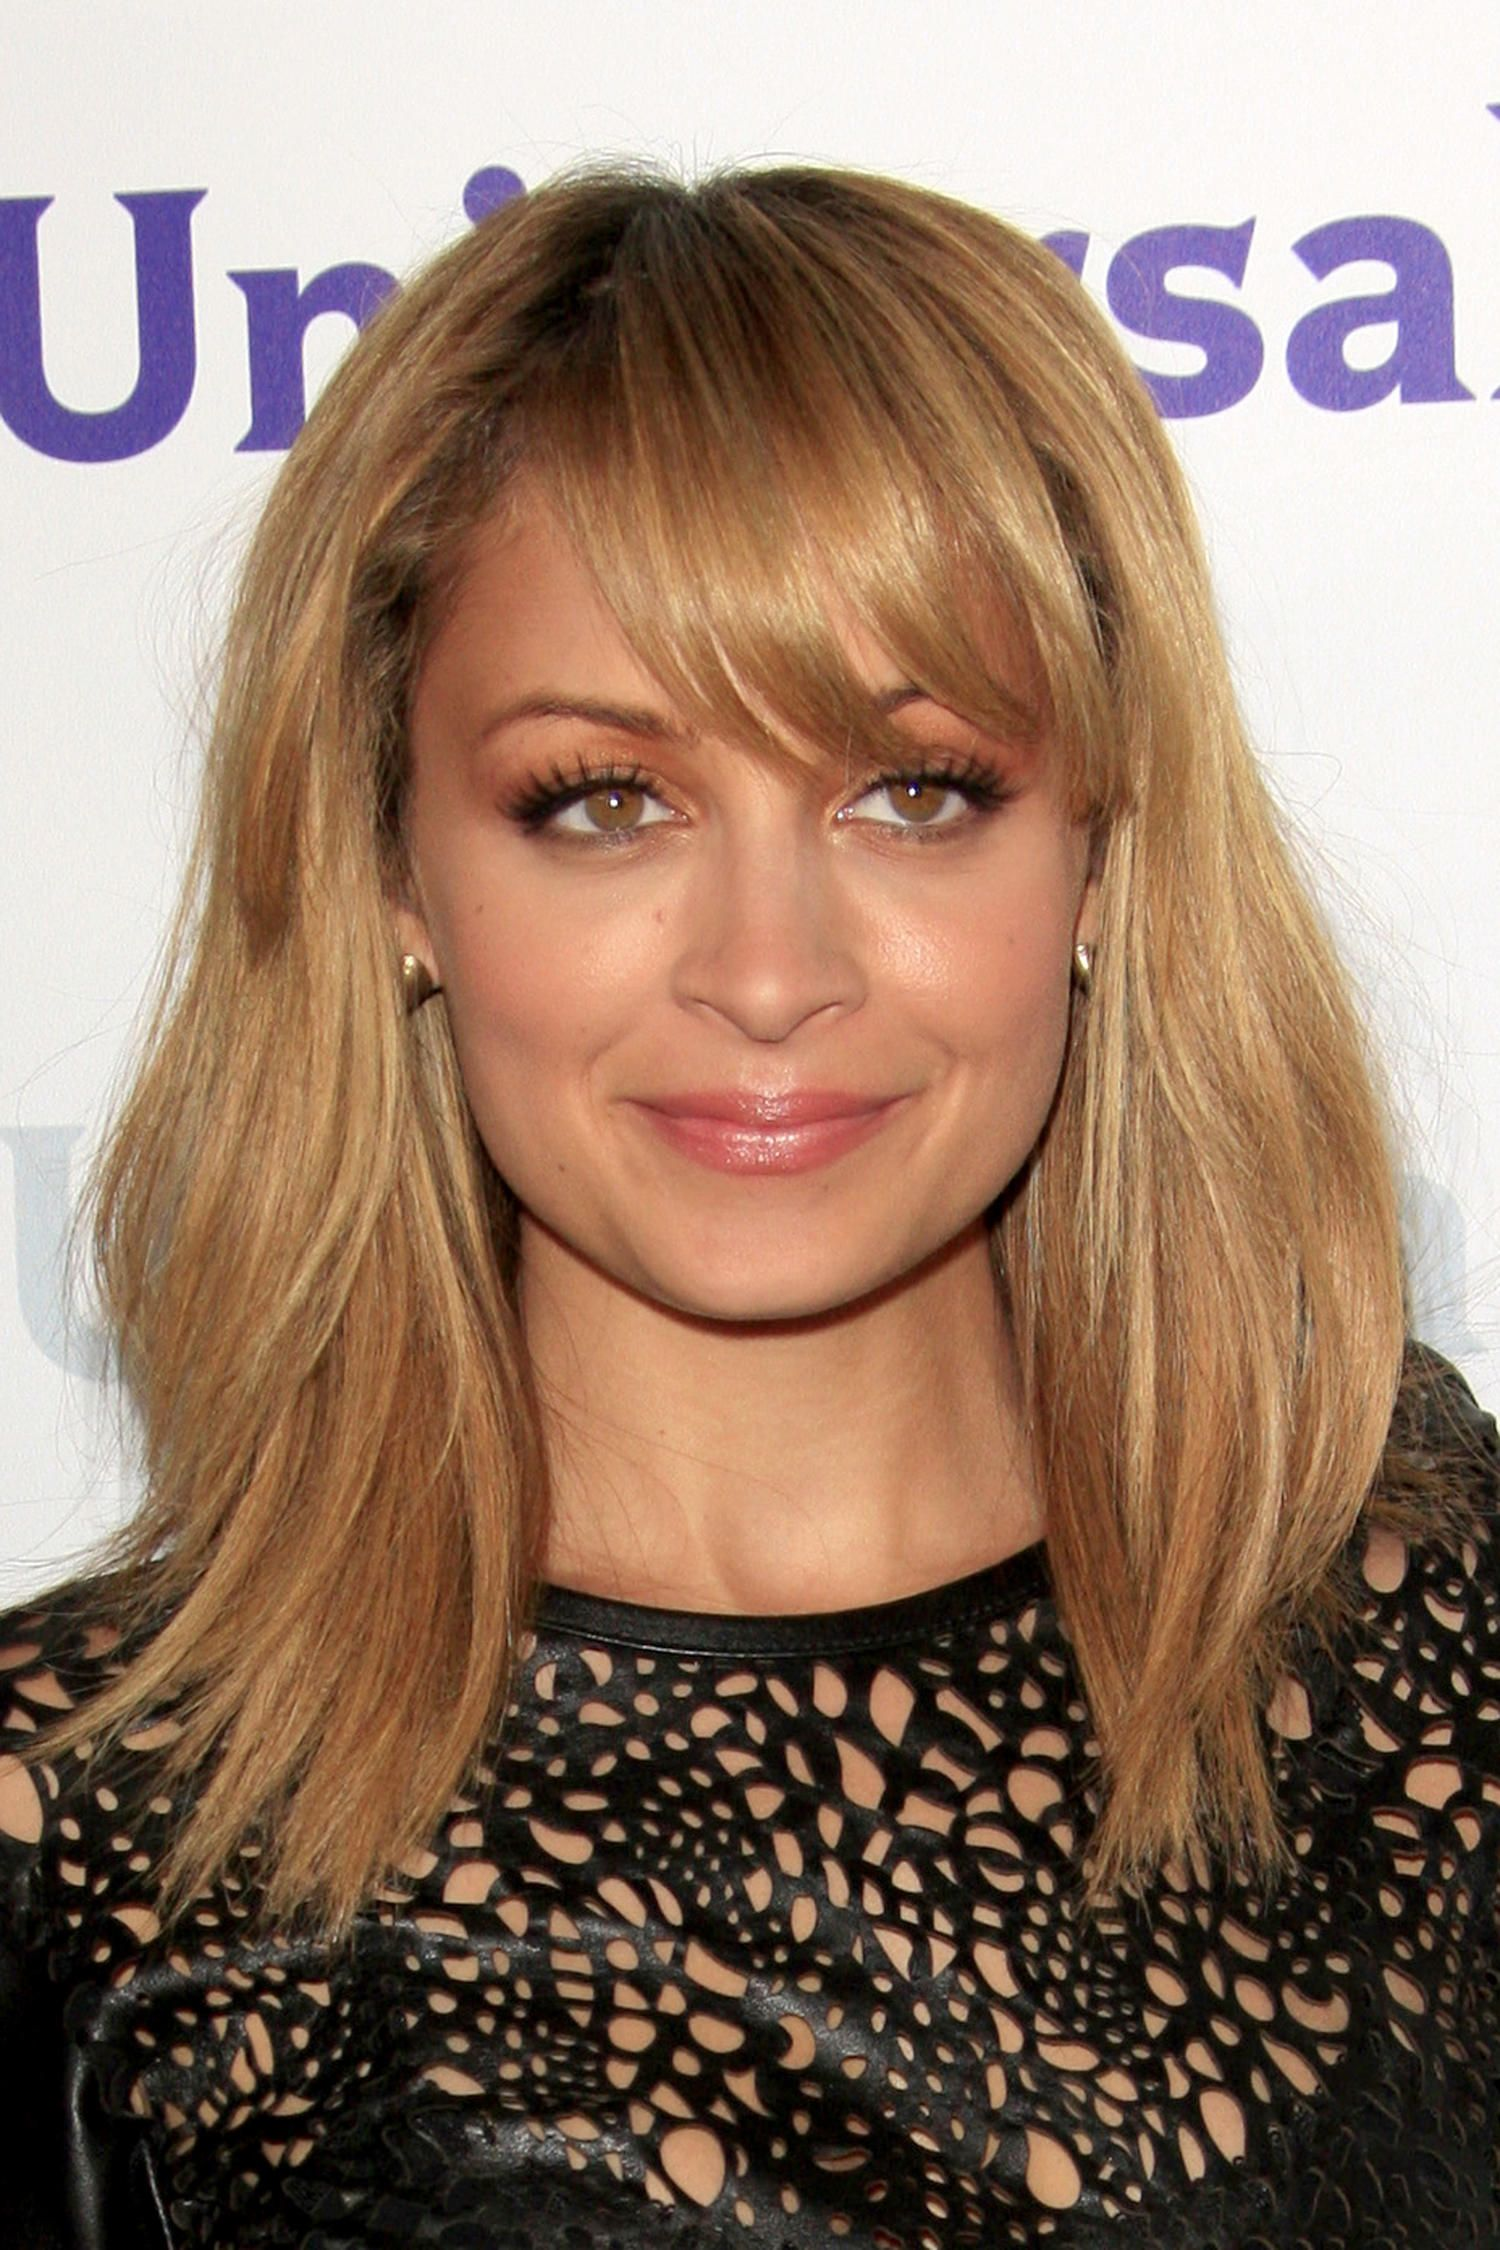 Long Brown Hairstyles with Bangs: Nicole Richie Hair Long Brown Hairstyles with Bangs: Nicole Richie Hair new picture